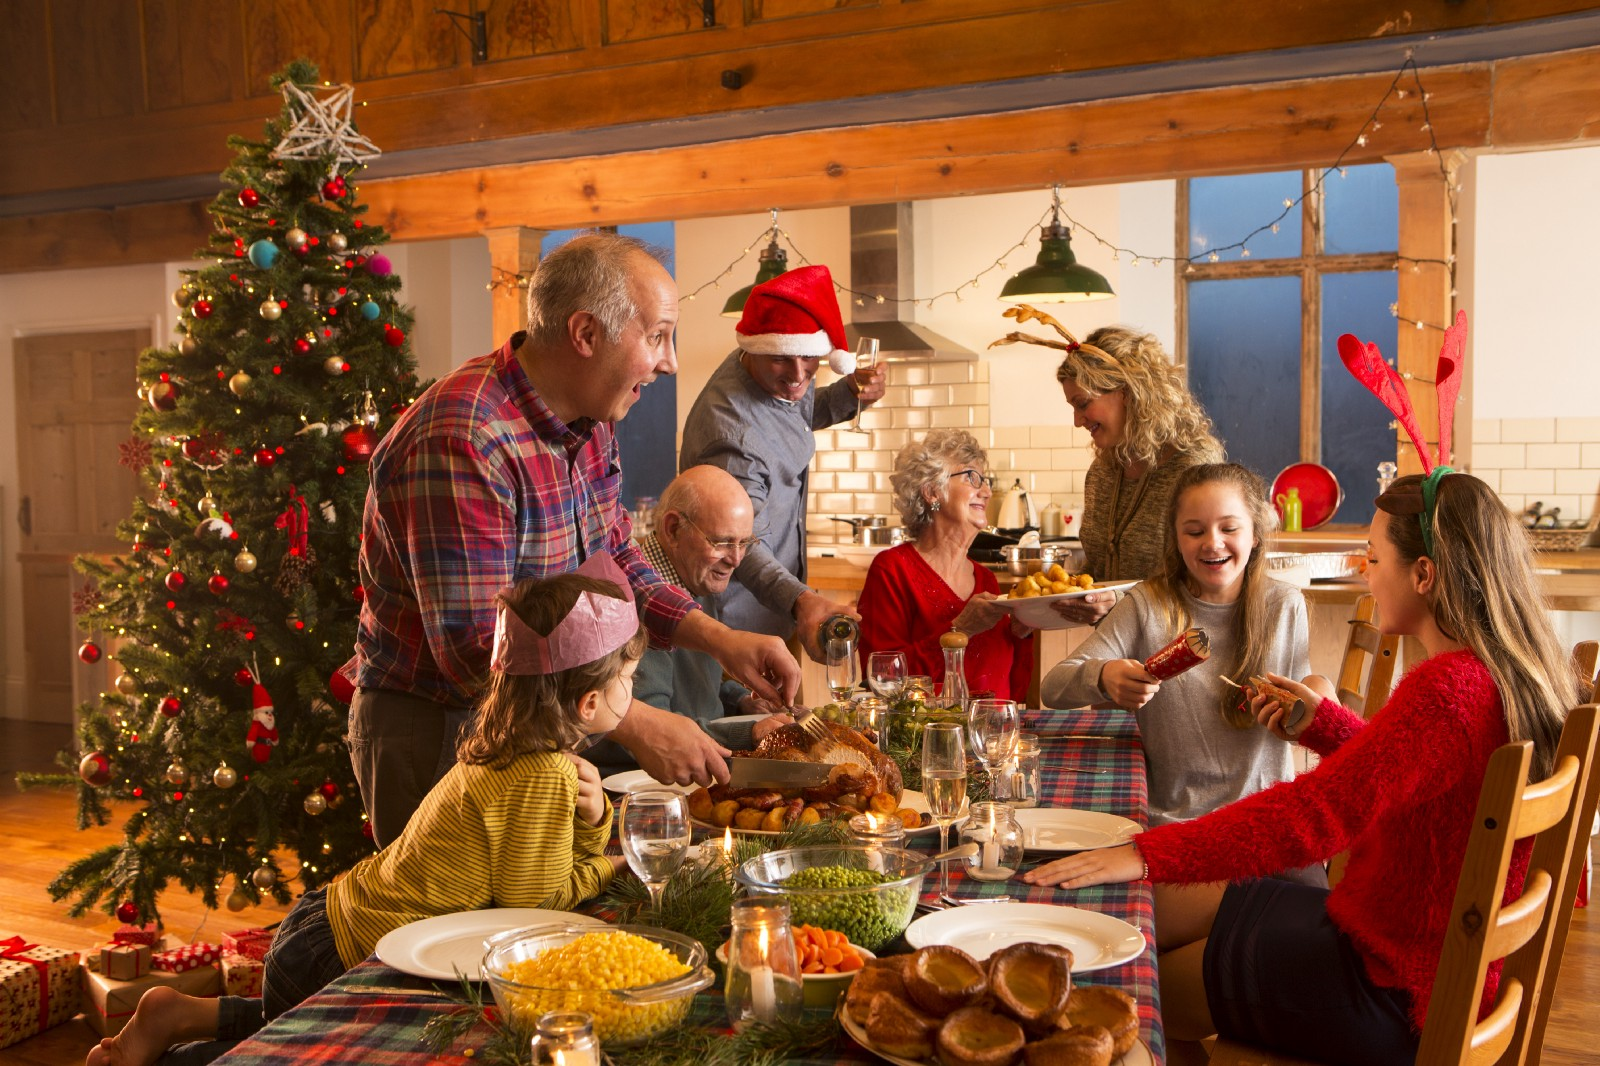 family gathered around the table for holiday meal